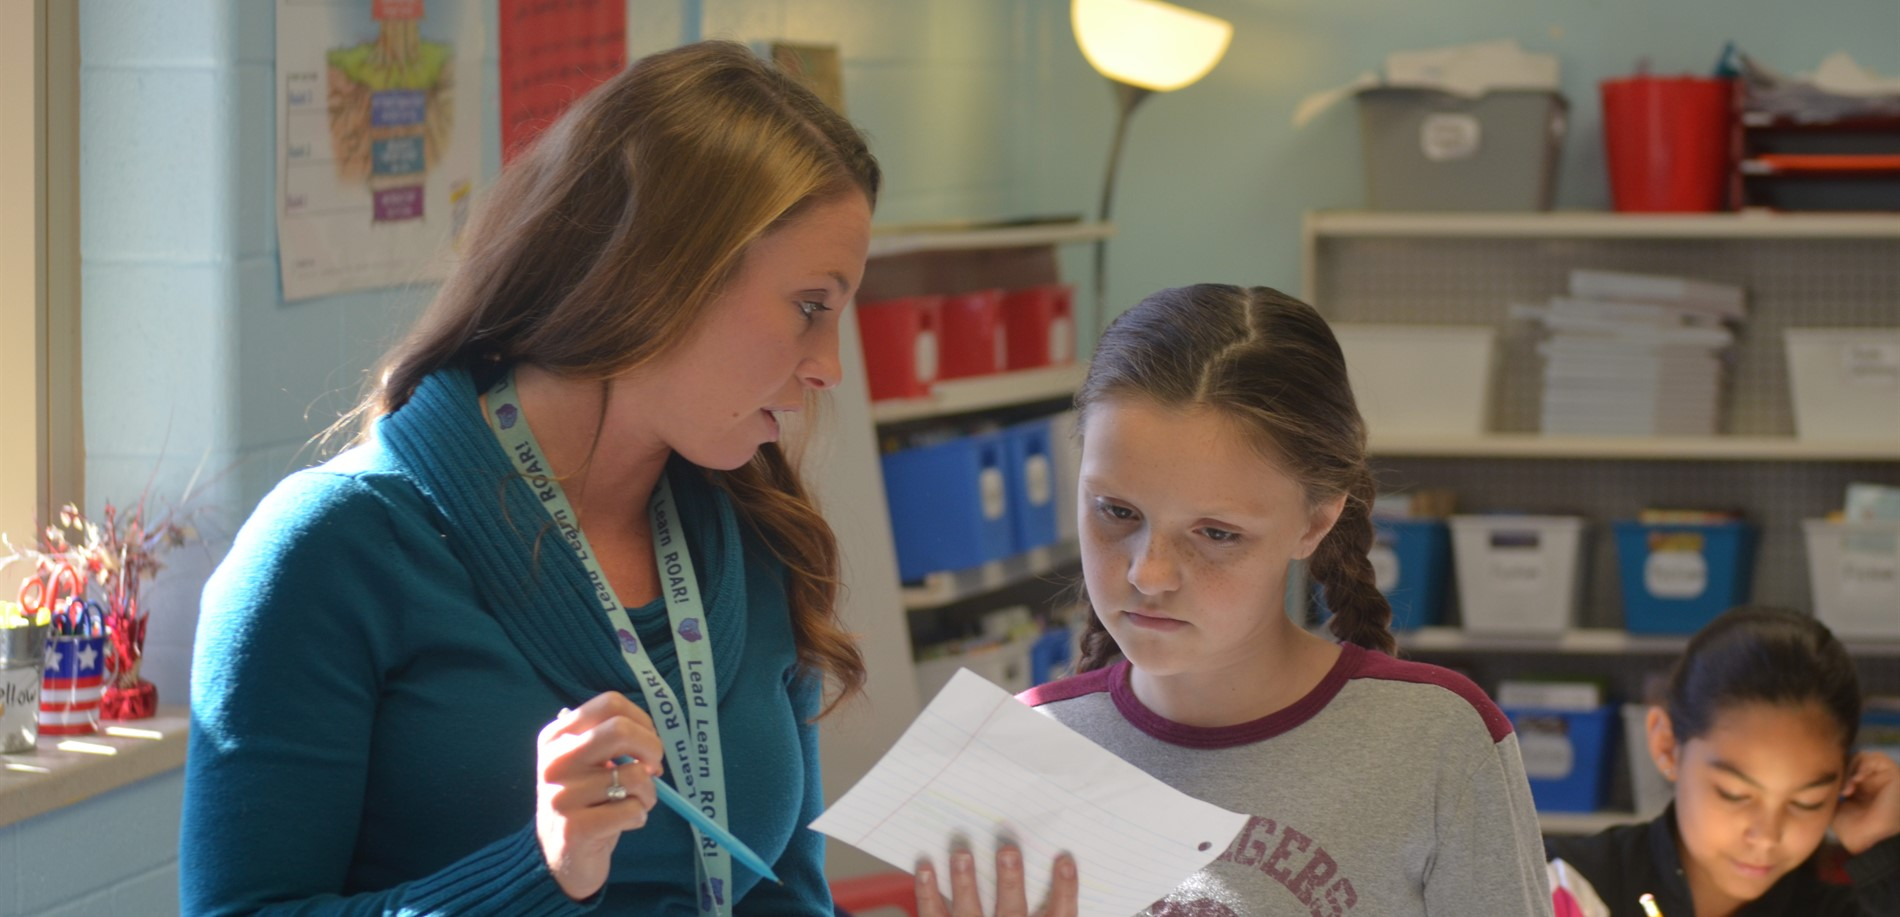 Ms. Marcum and her Lakewood Elementary students were working on a recent project.